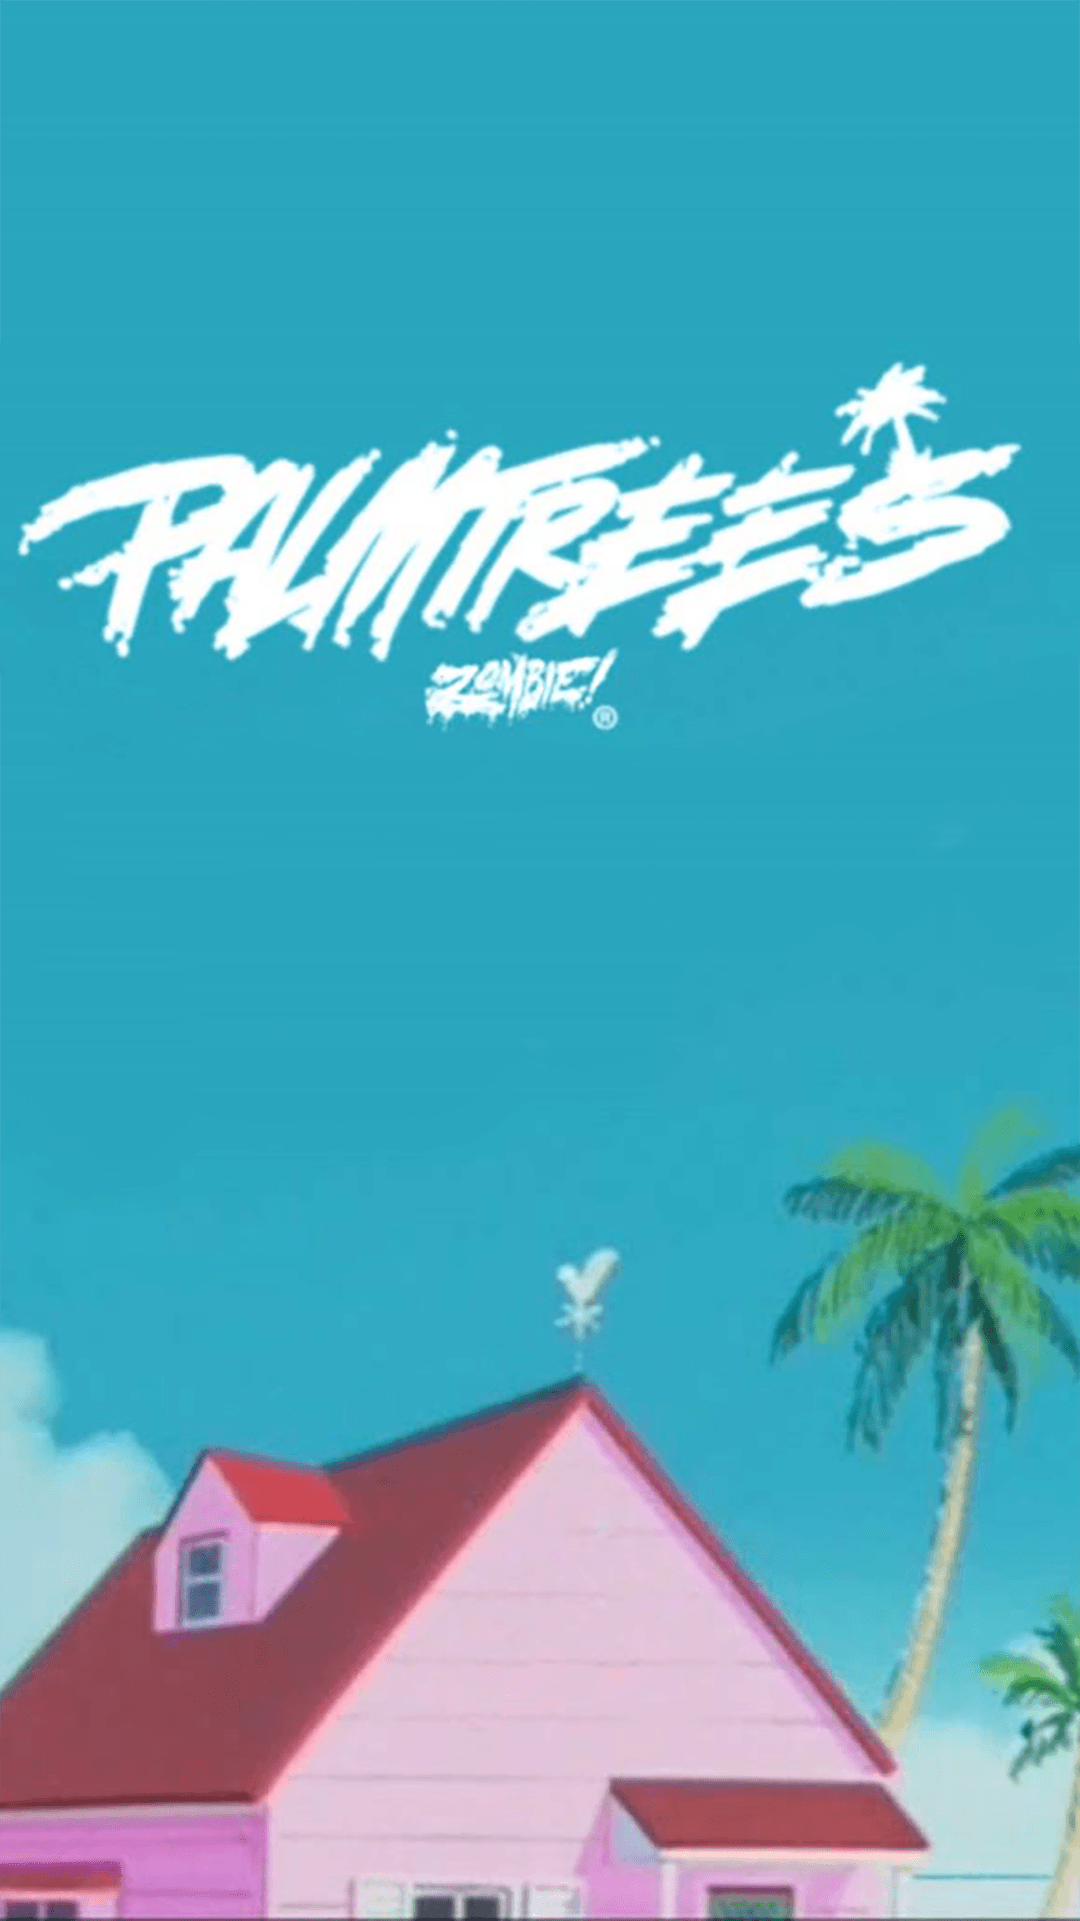 1080x1921 Flatbush Zombies Iphone Wallpaper (29+ images) on Genchi.info